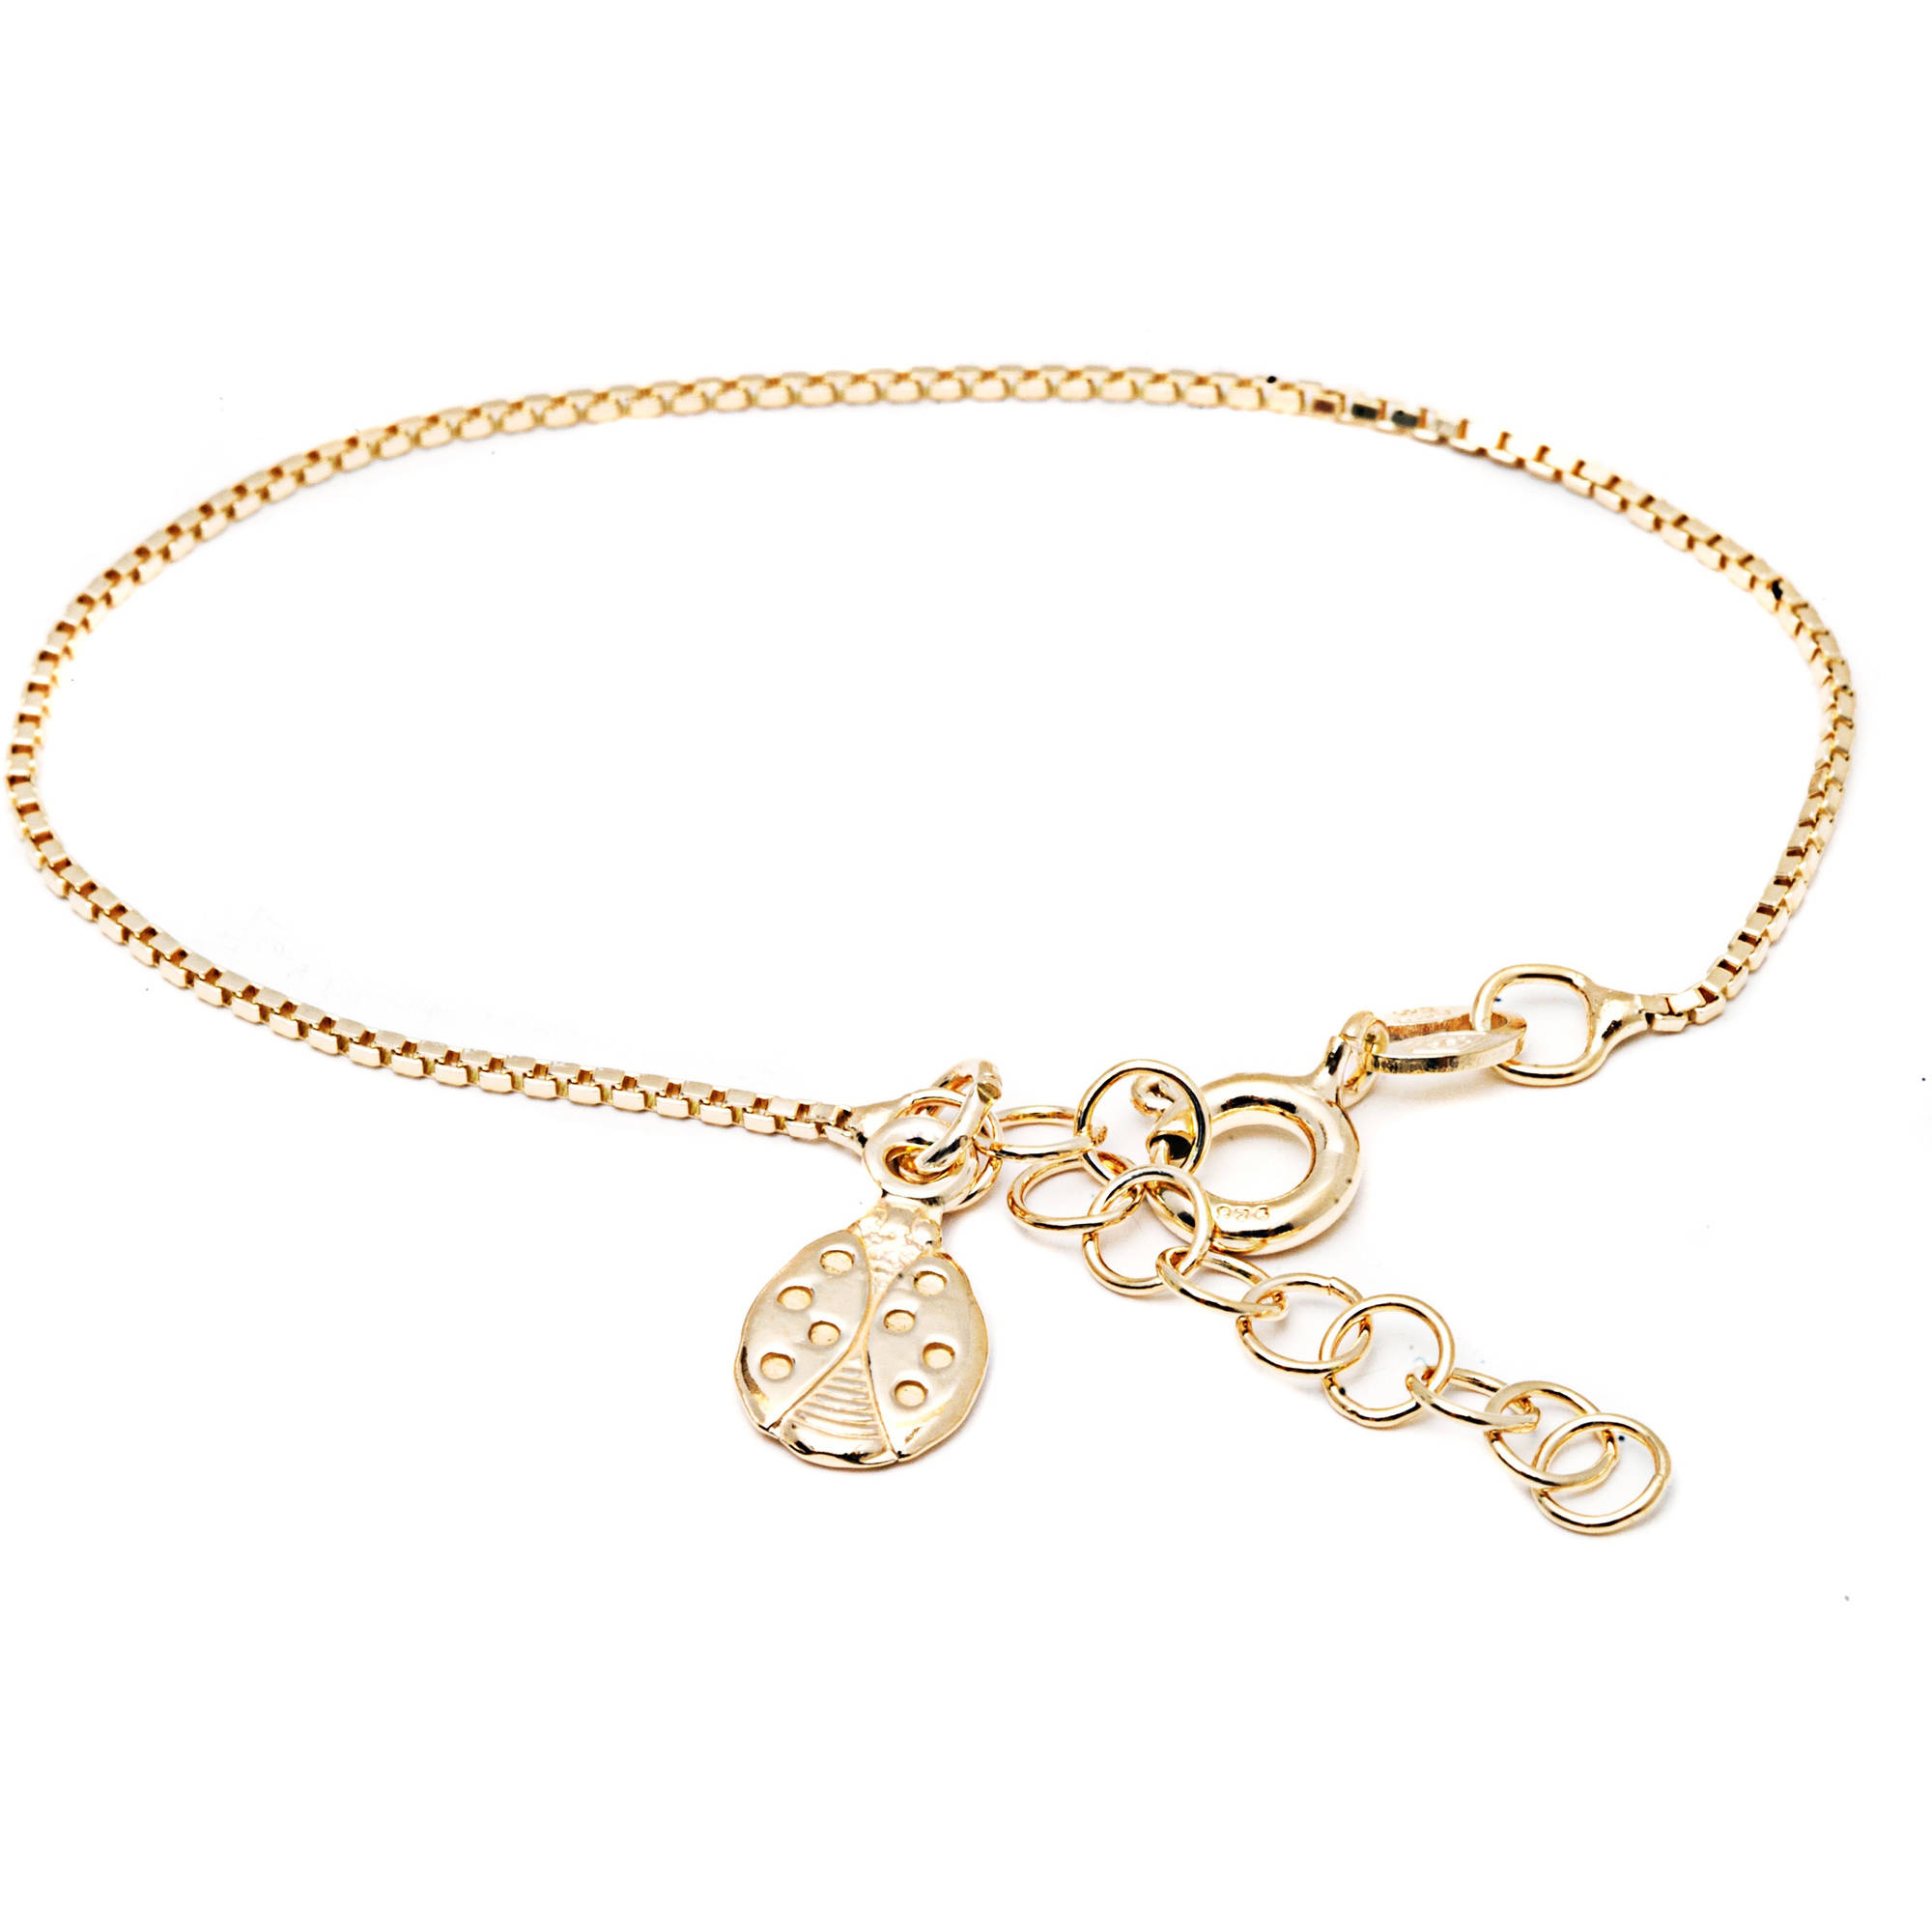 """Pori Jewelers 18kt Gold-Plated Sterling Silver Kids' Bracelet with Ladybug Charm, 6"""" Box Chain"""